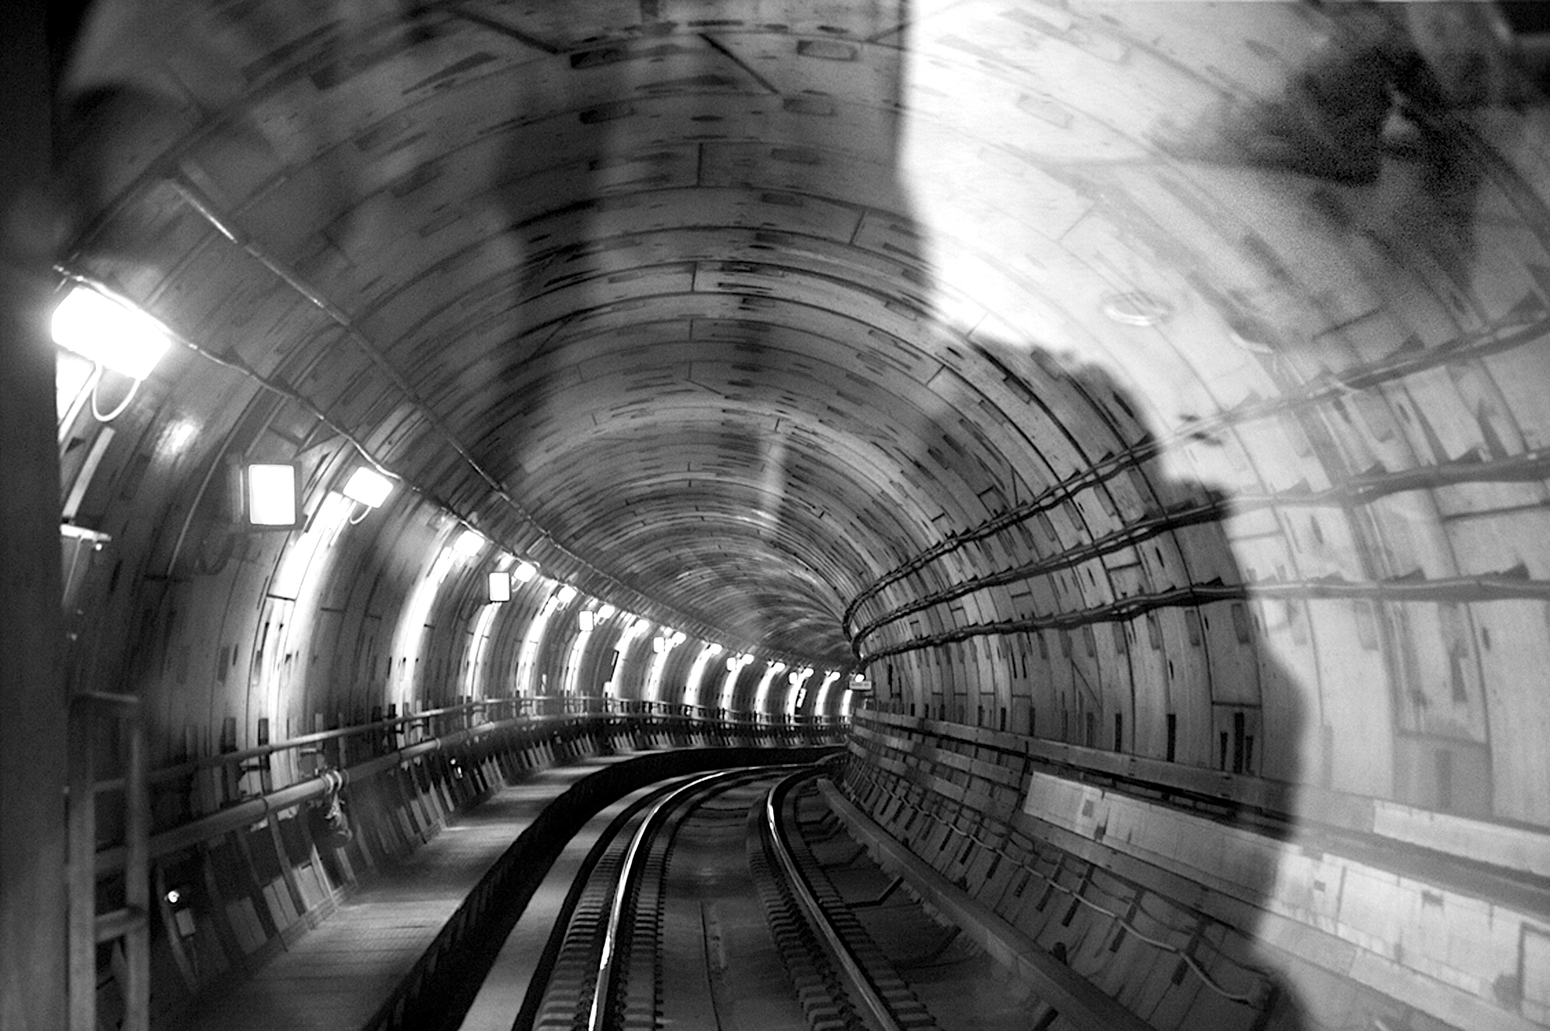 Copenhagen Under Ground in Black and White #1